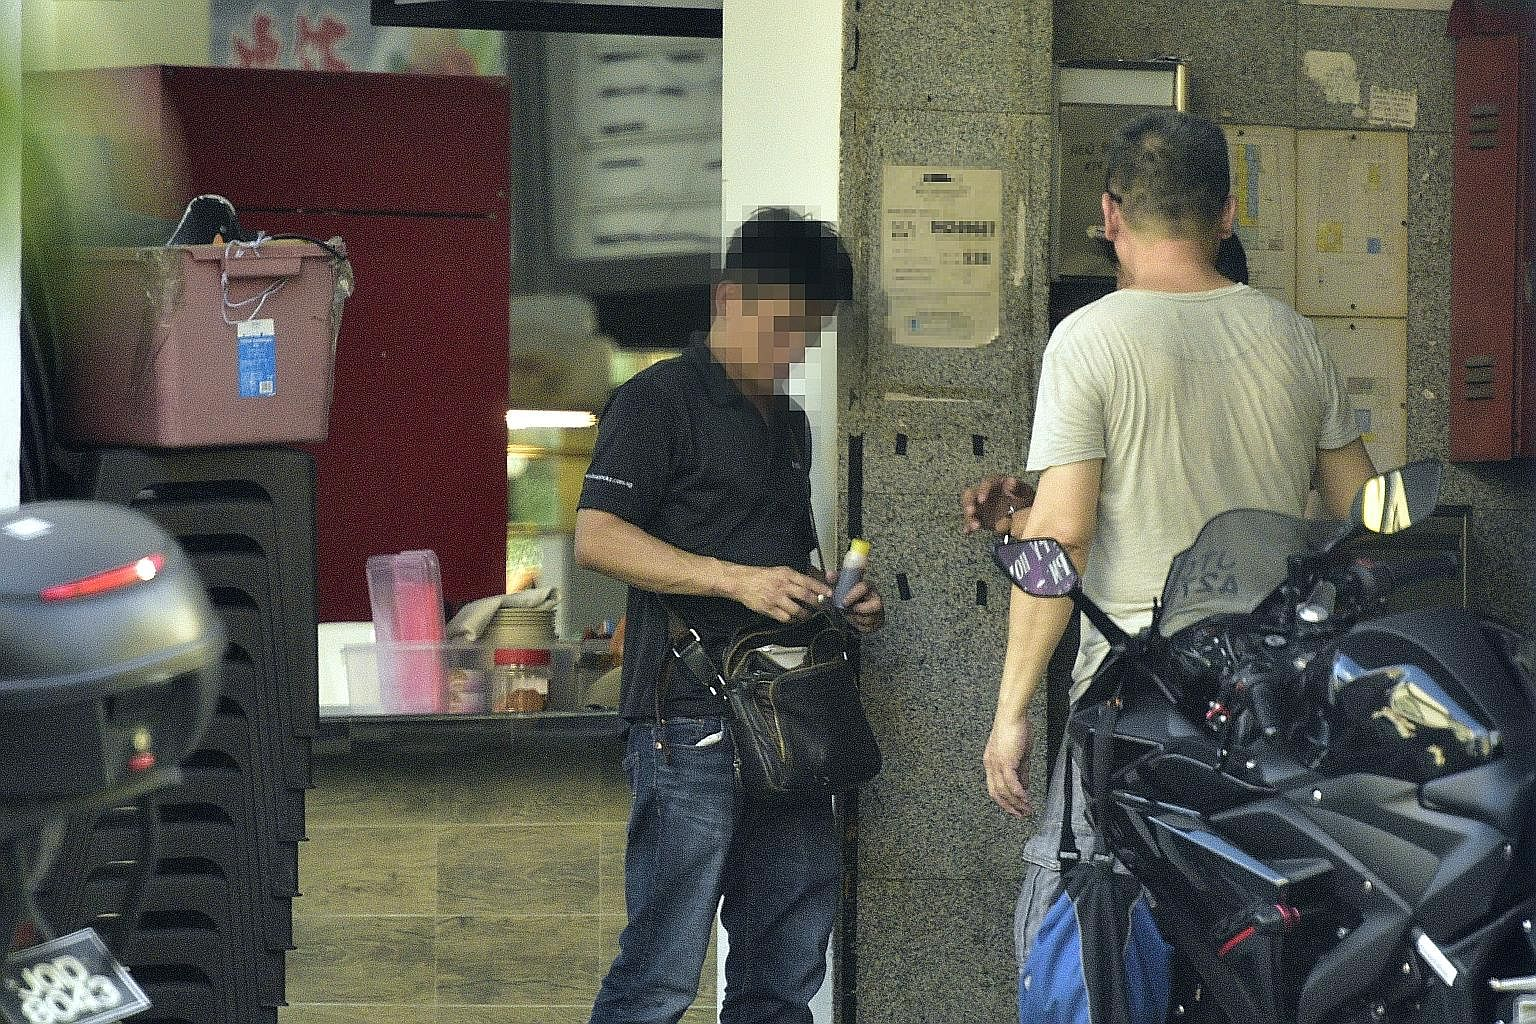 A buyer (in black) procuring a bottle of cough syrup behind a coffee shop in Geylang Lorong 7 while a minder (in grey) looks on. The bottles are hidden inside mailboxes and motorcycle top cases just a few metres away, and are retrieved once a sale is